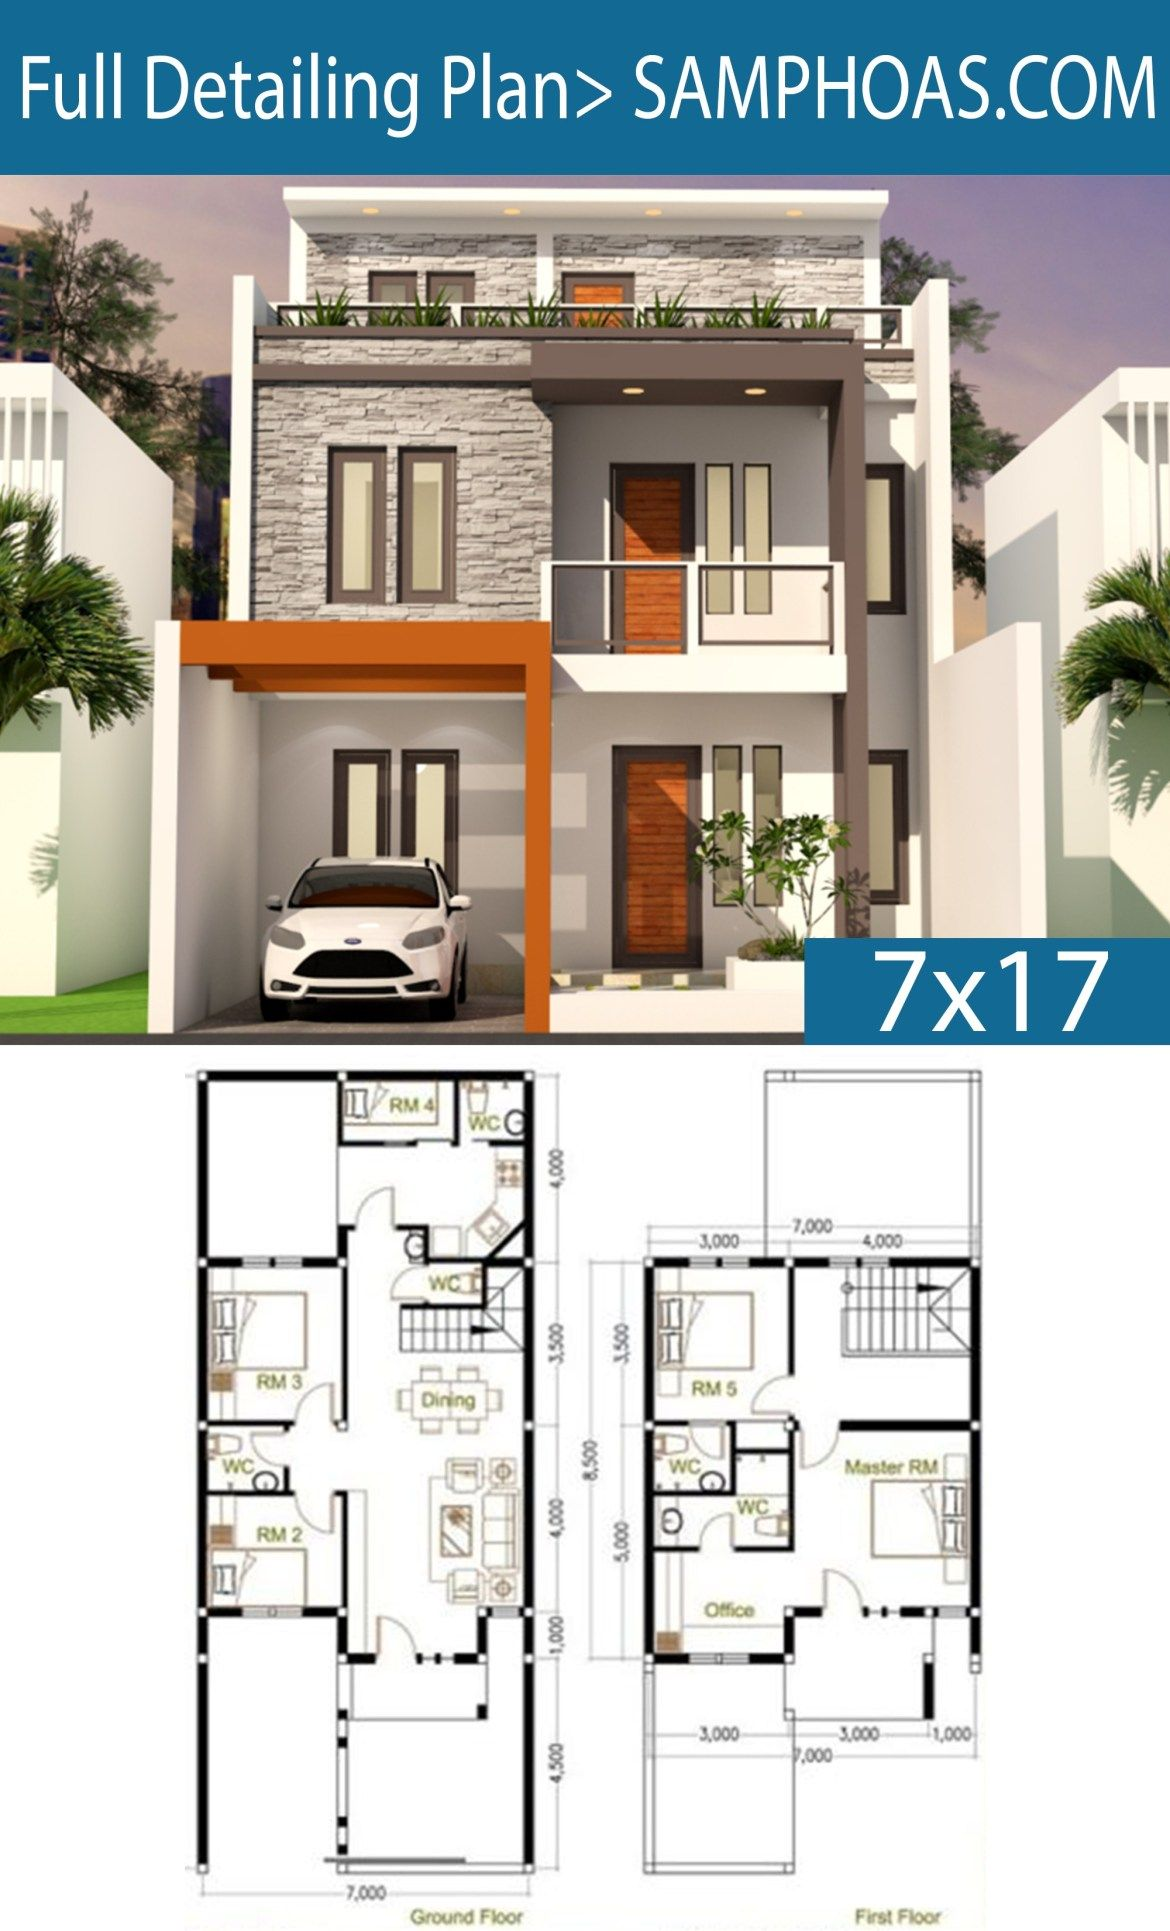 5 Bedrooms Home Design Plan 7x17 Samphoas Plansearch Duplex House Design Model House Plan House Construction Plan